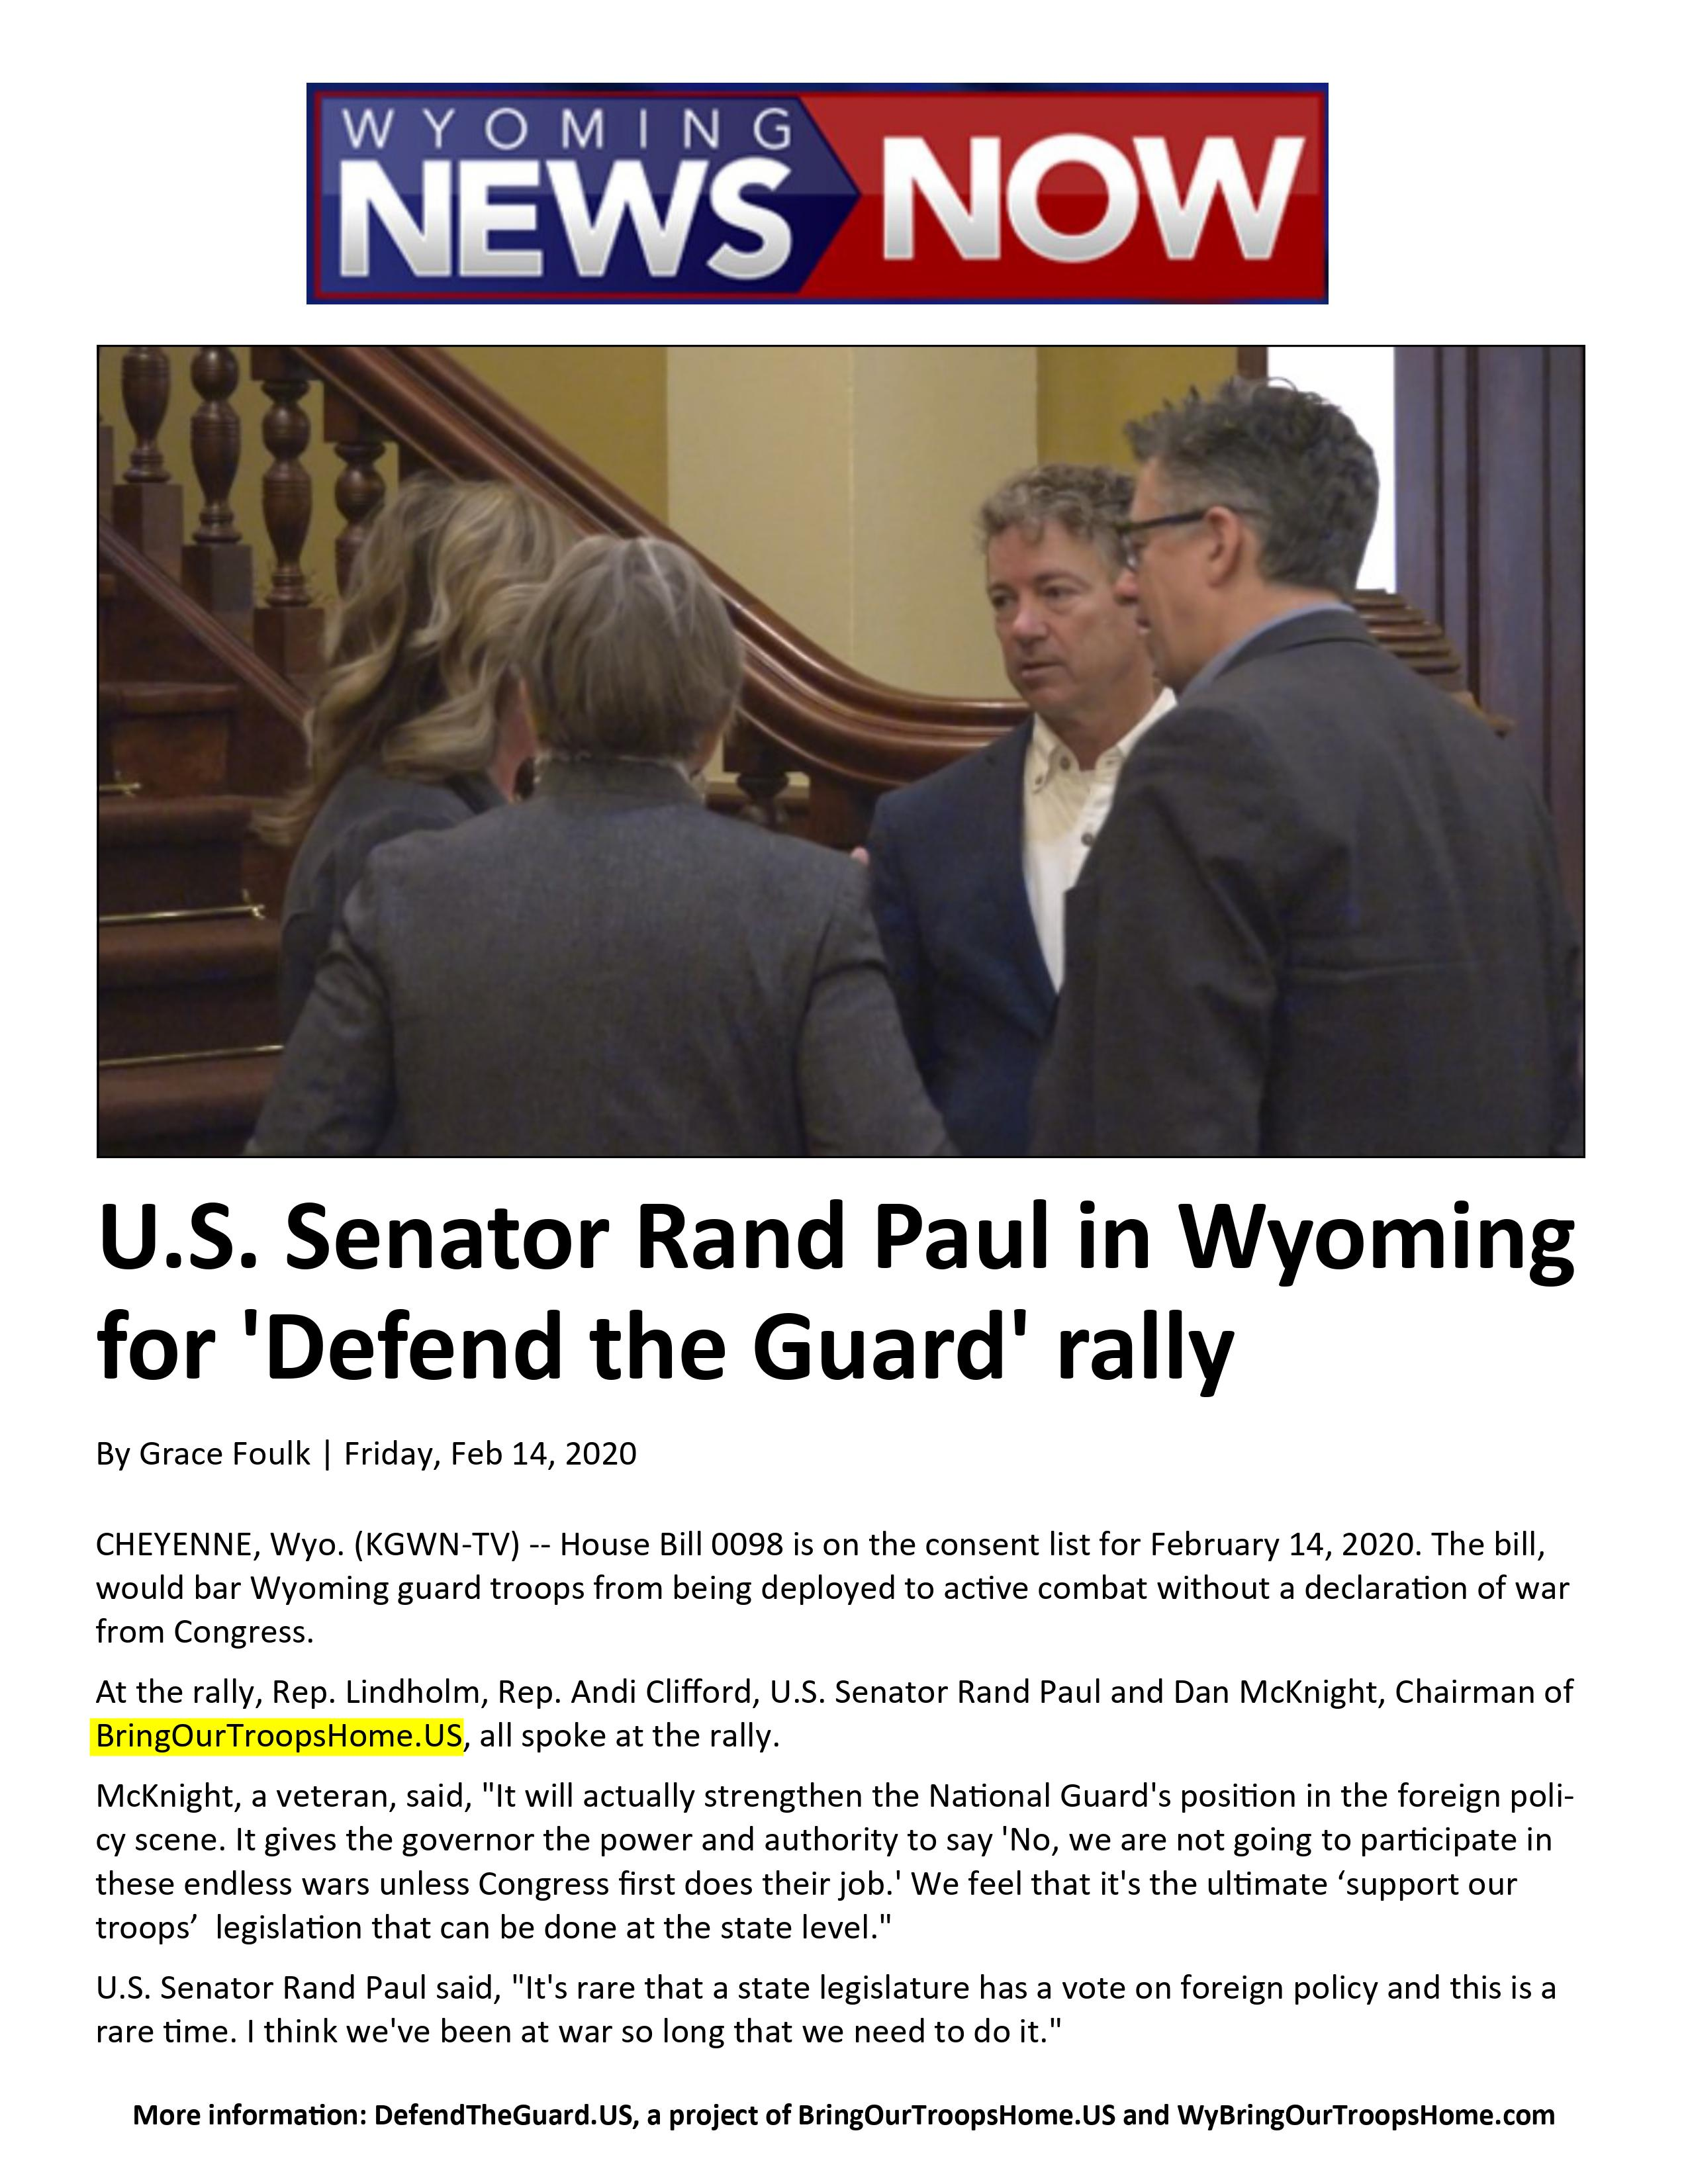 U.S. Senator Rand Paul in Wyoming for 'Defend the Guard' Rally